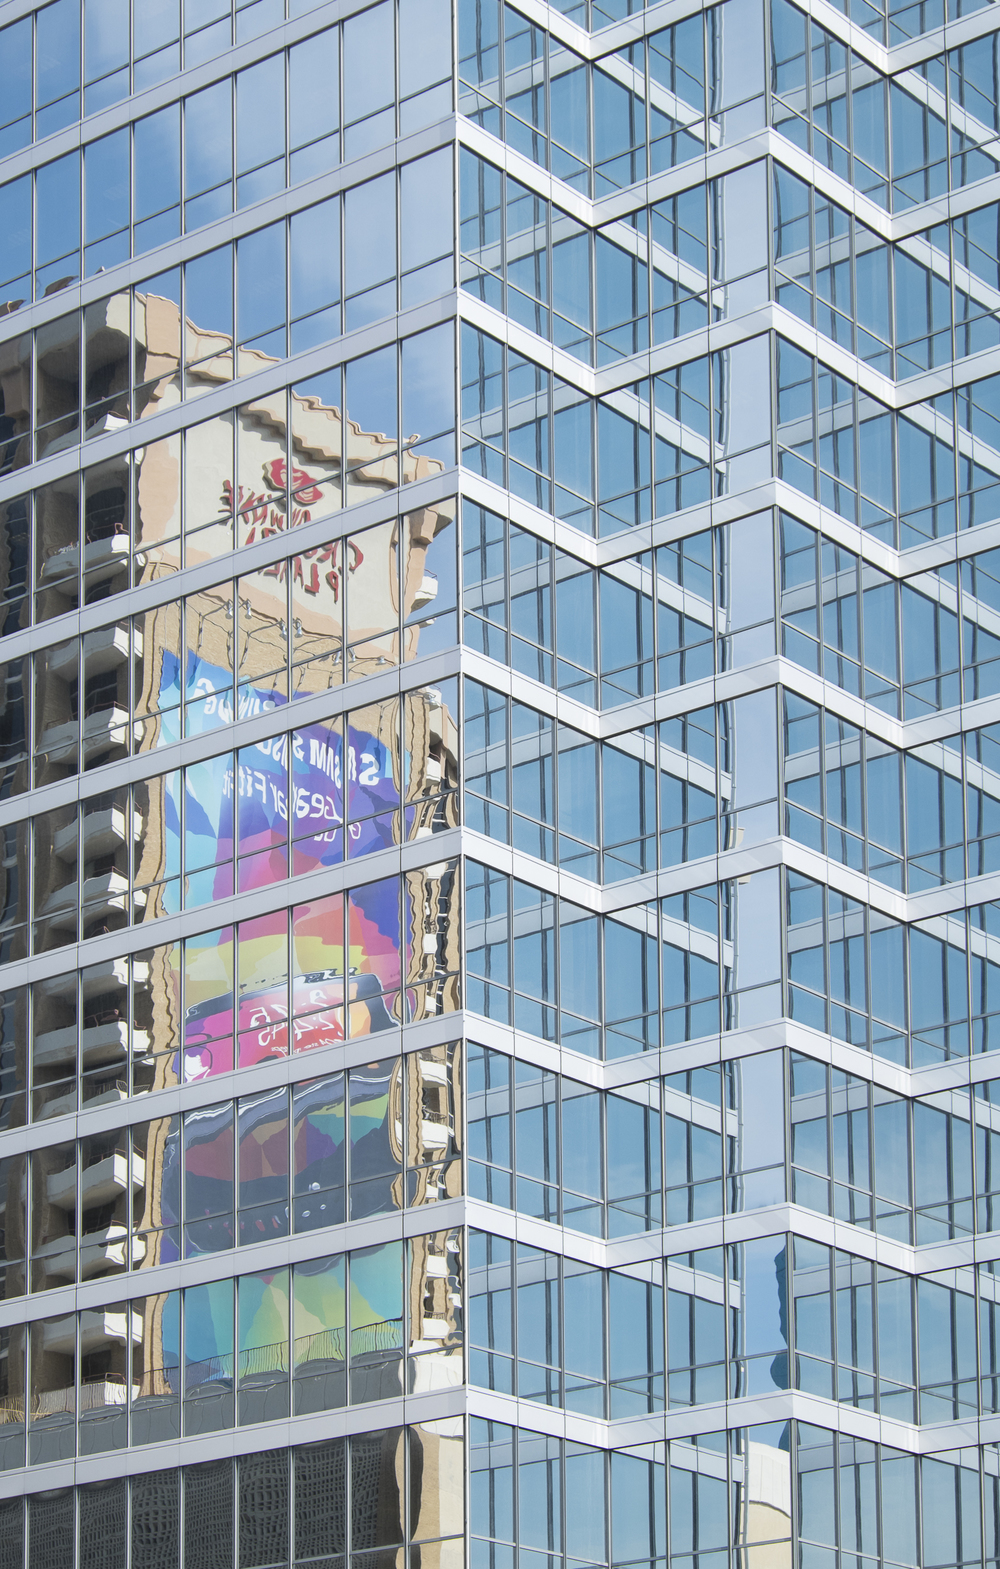 Dallas skyscraper provides colorful reflections.